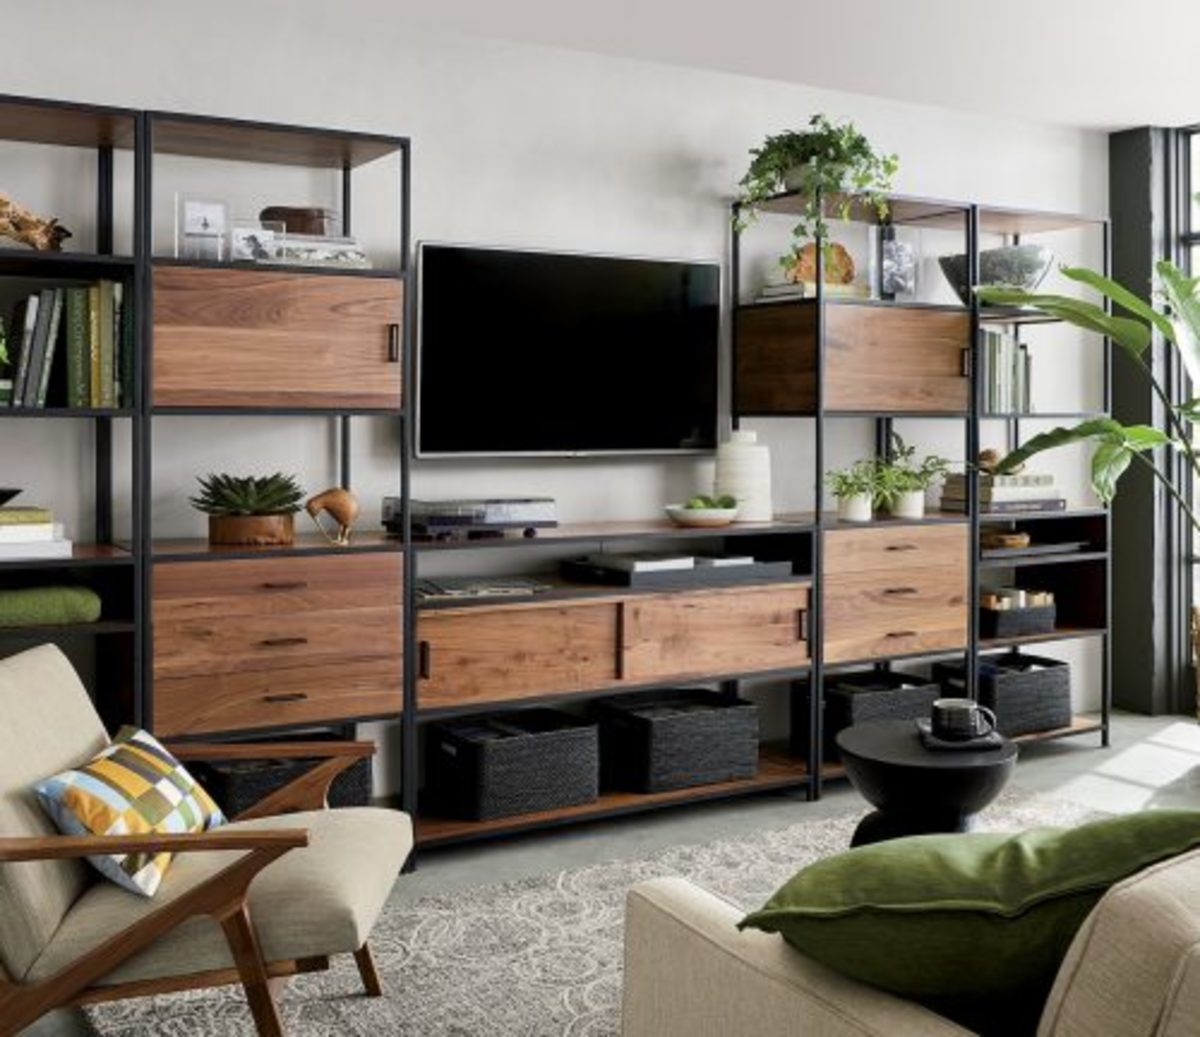 It's a great way to organize everything to hide living room clutter.